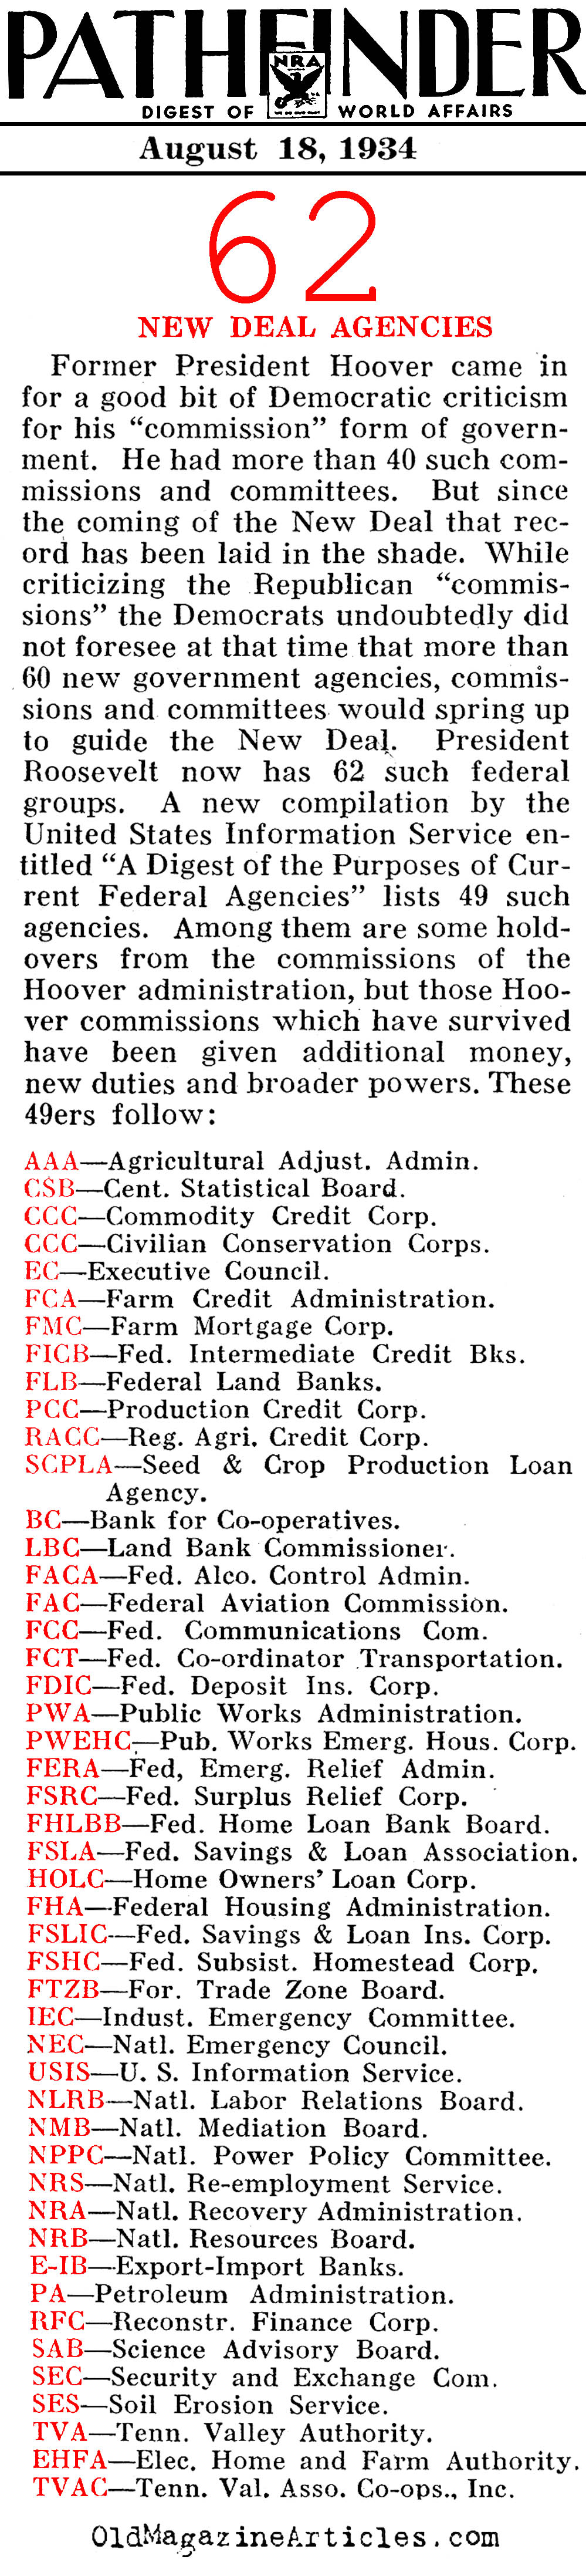 FDR's Alphabet Agencies (Pathfinder Magazine, 1934)